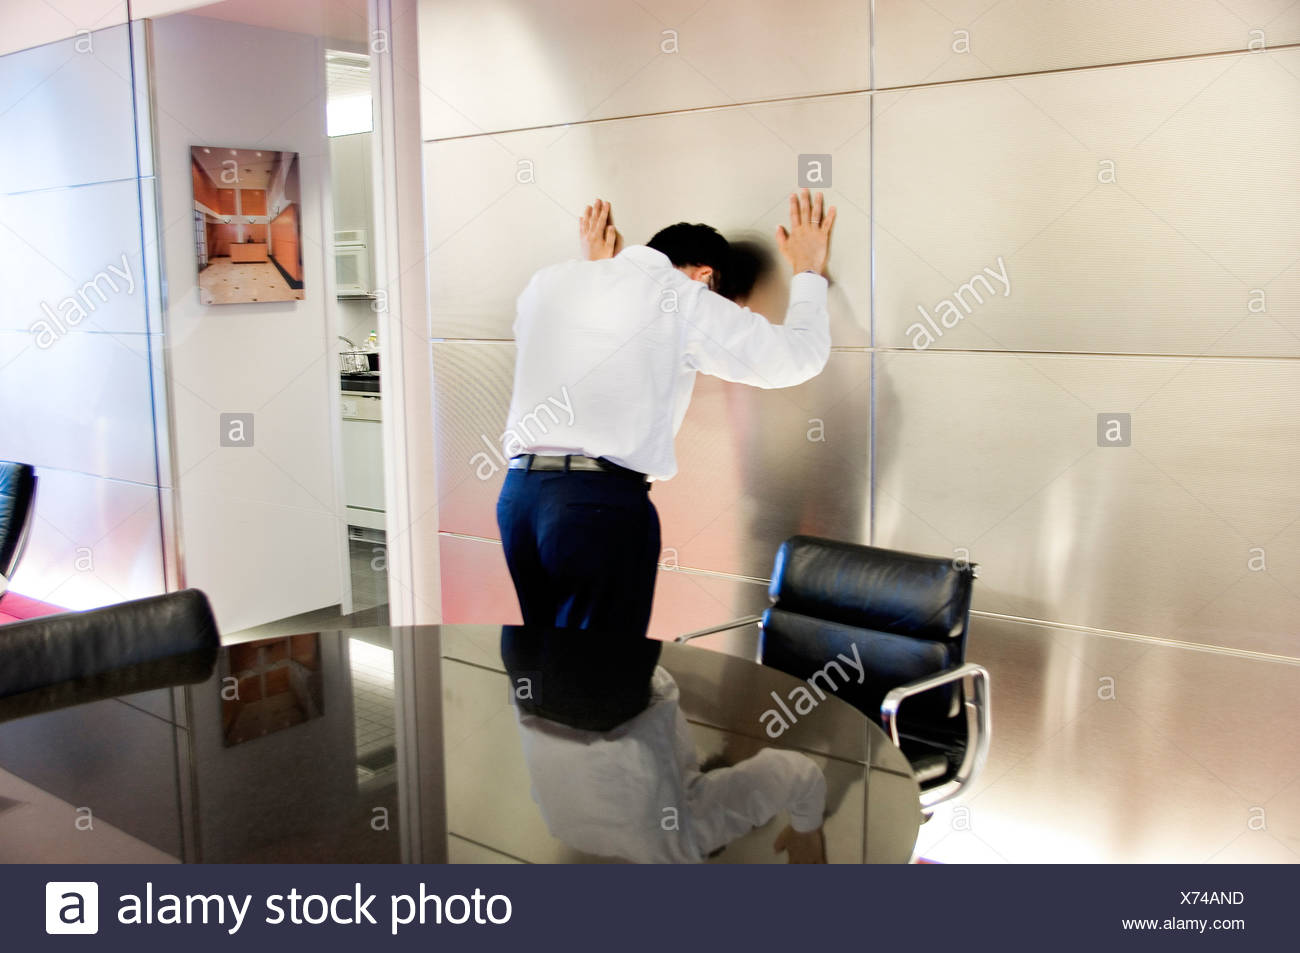 Businessman banging head against the wall - Stock Image